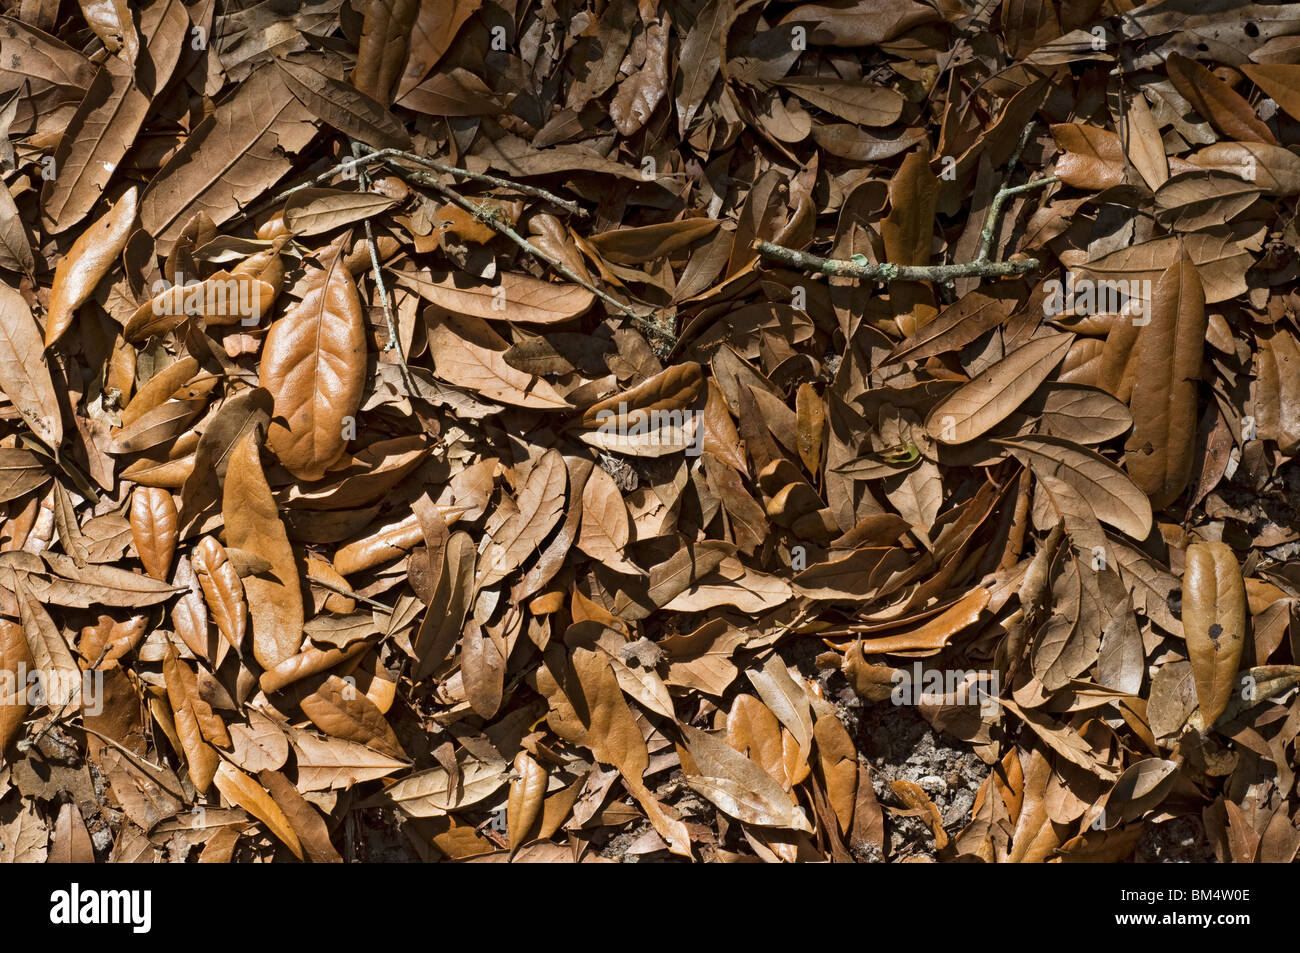 Pile of dead leaves in driveway stock photo 29610910 alamy pile of dead leaves in driveway biocorpaavc Images